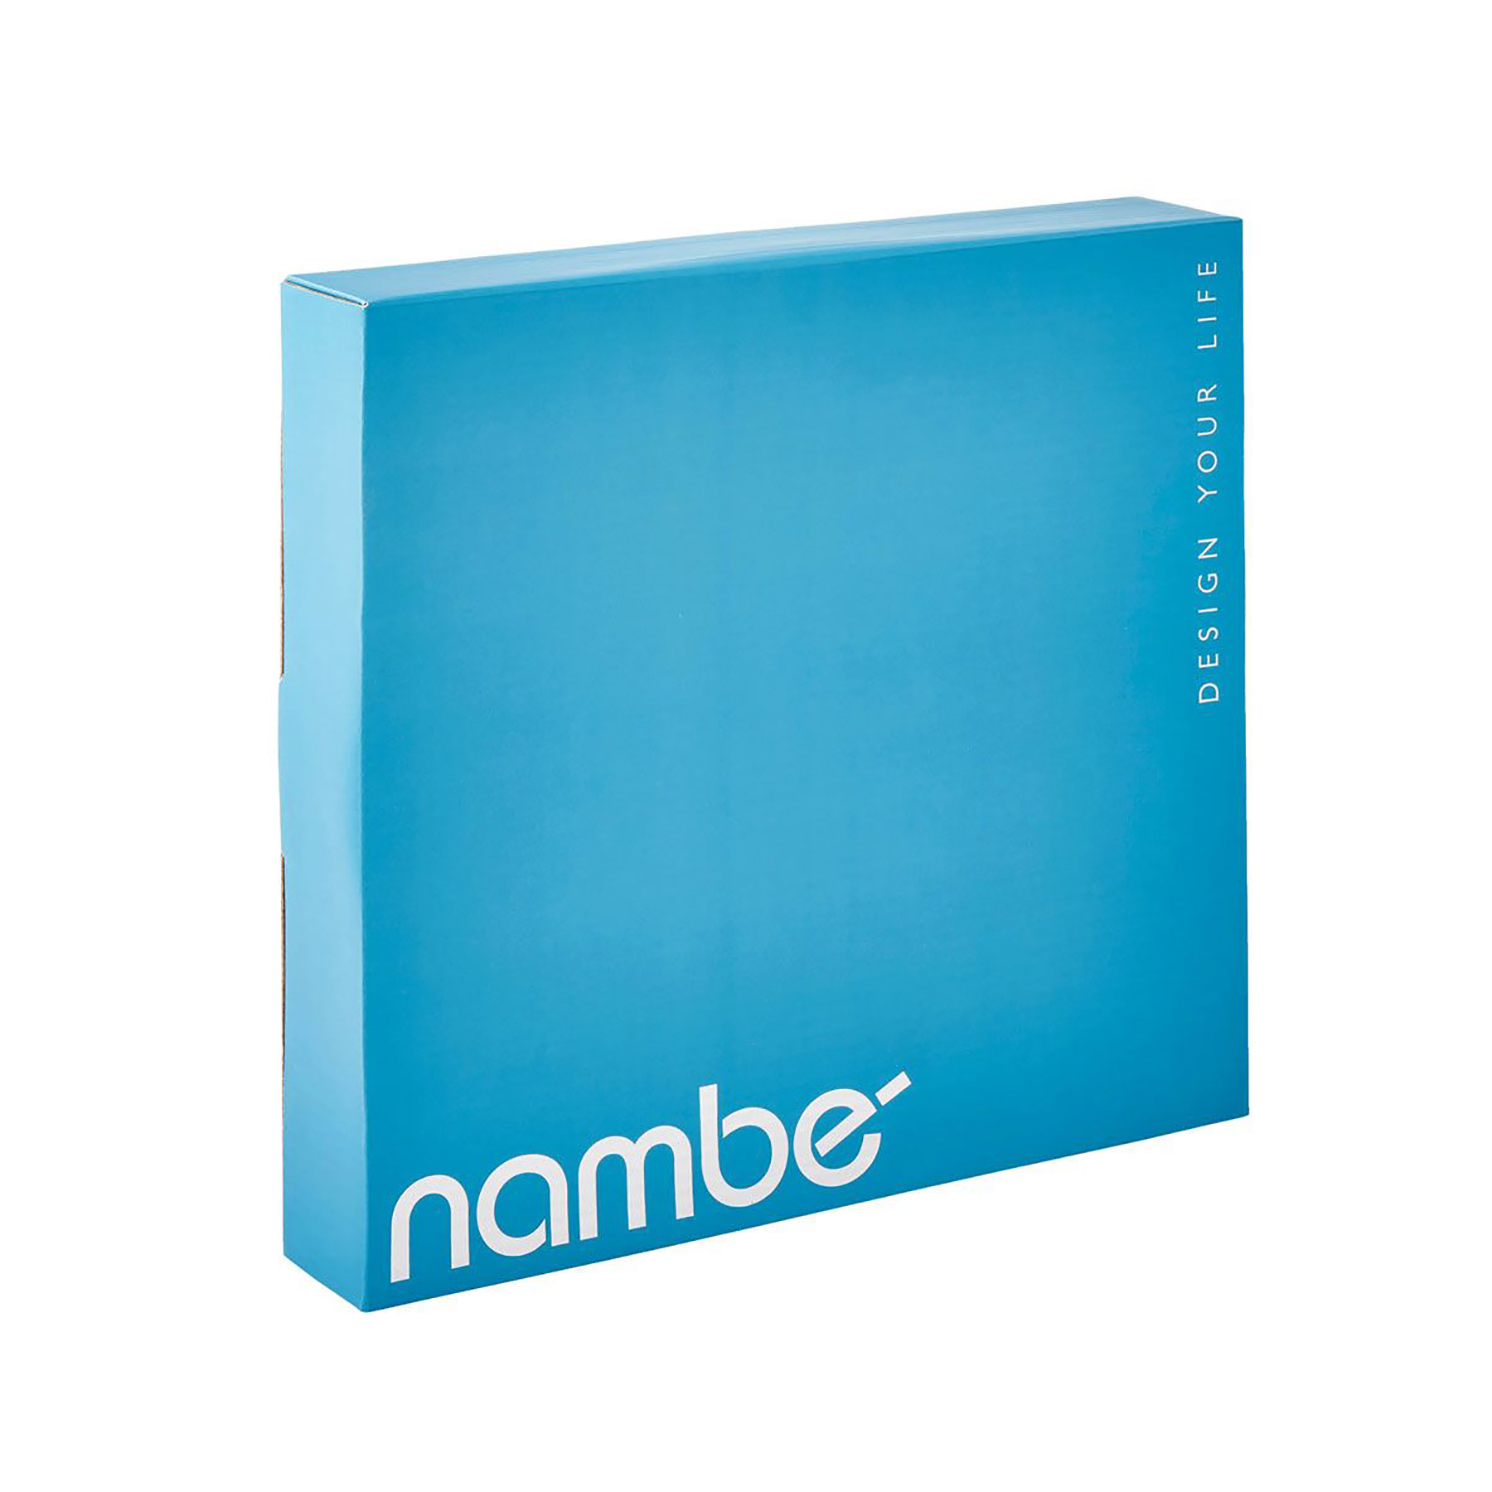 Nambe – Cheese Board with Knife and Spreader in Gift Box